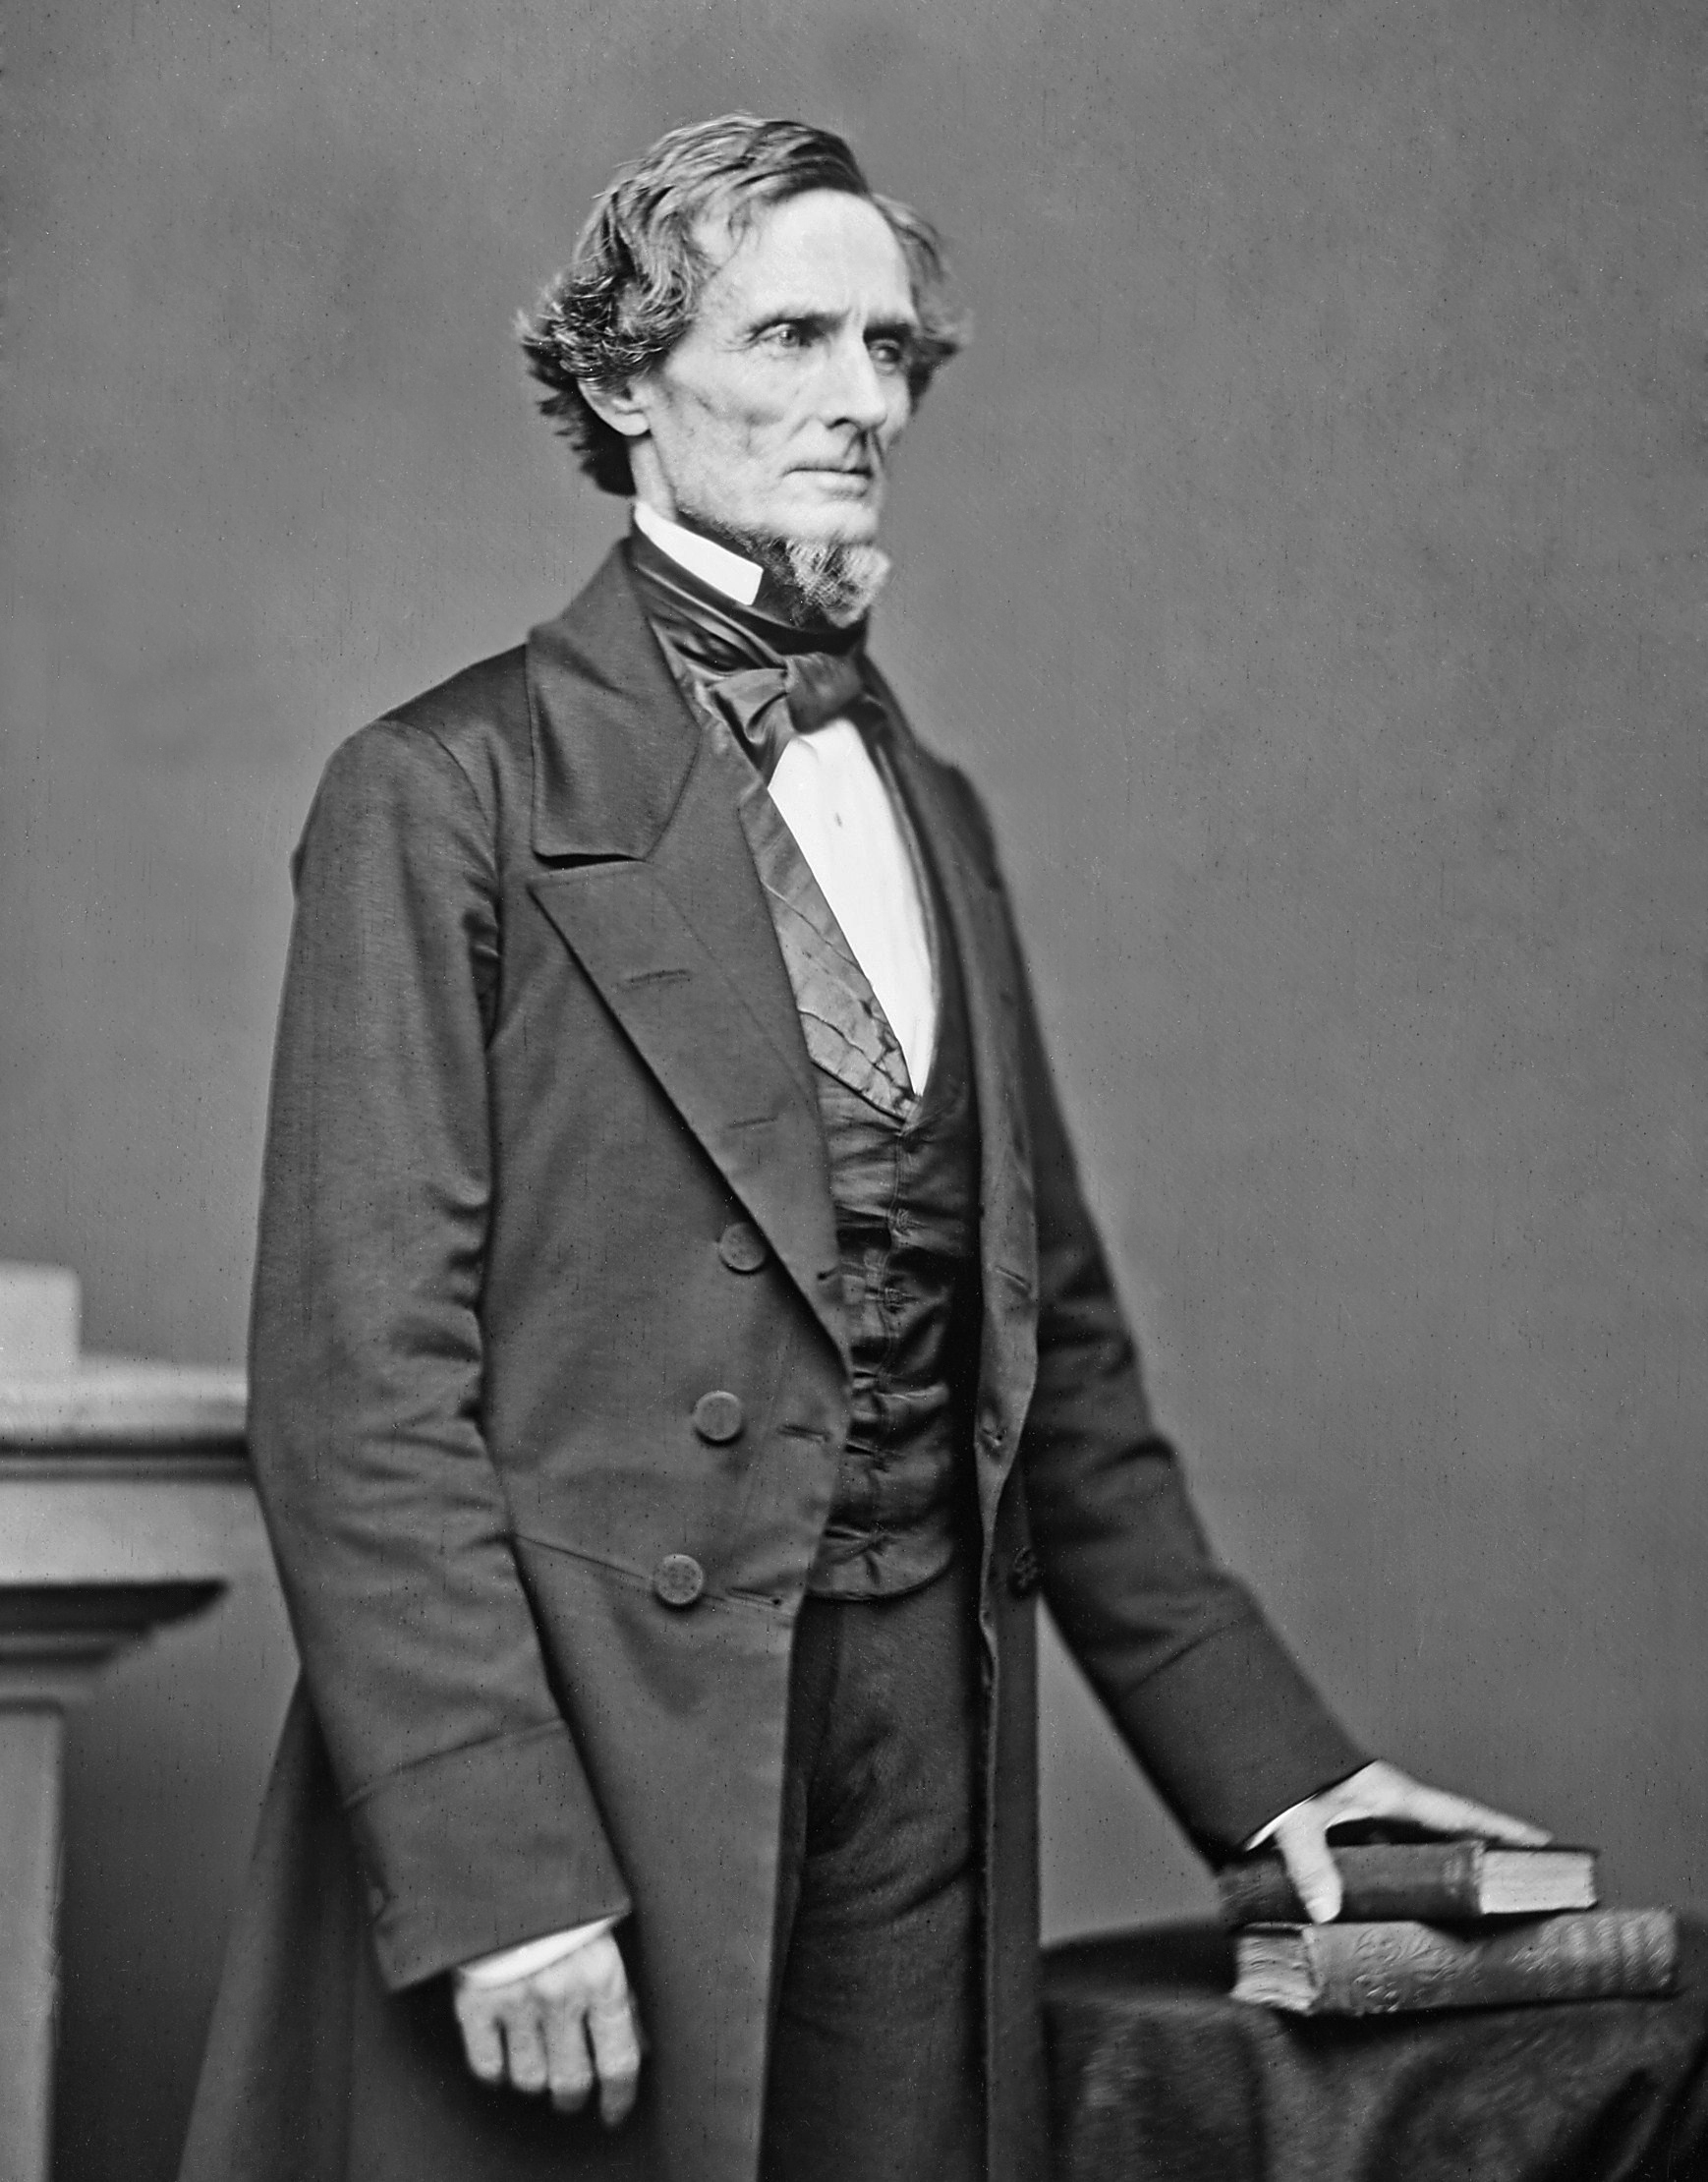 https://upload.wikimedia.org/wikipedia/commons/1/10/President-Jefferson-Davis.jpg